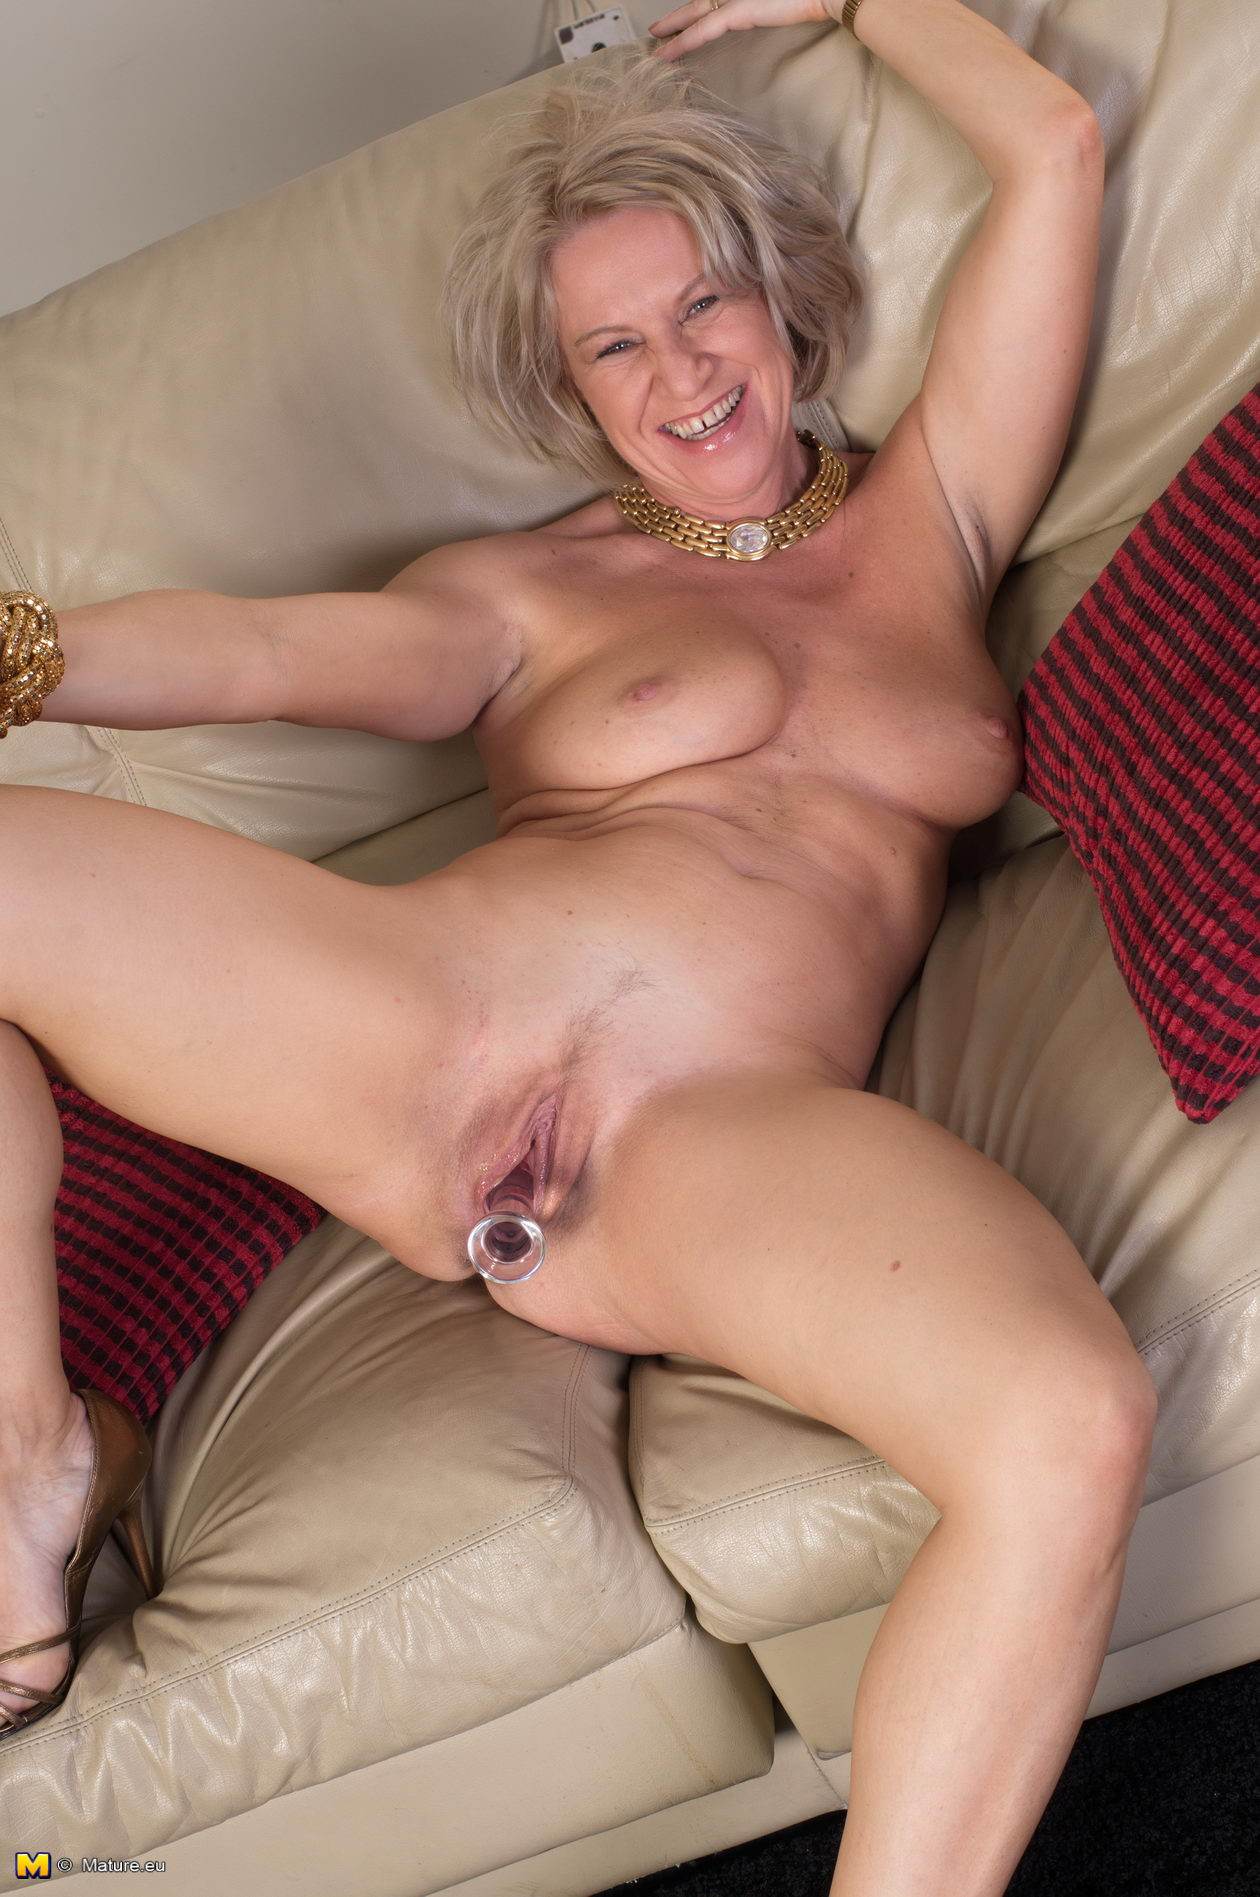 Naked mature women gray hair